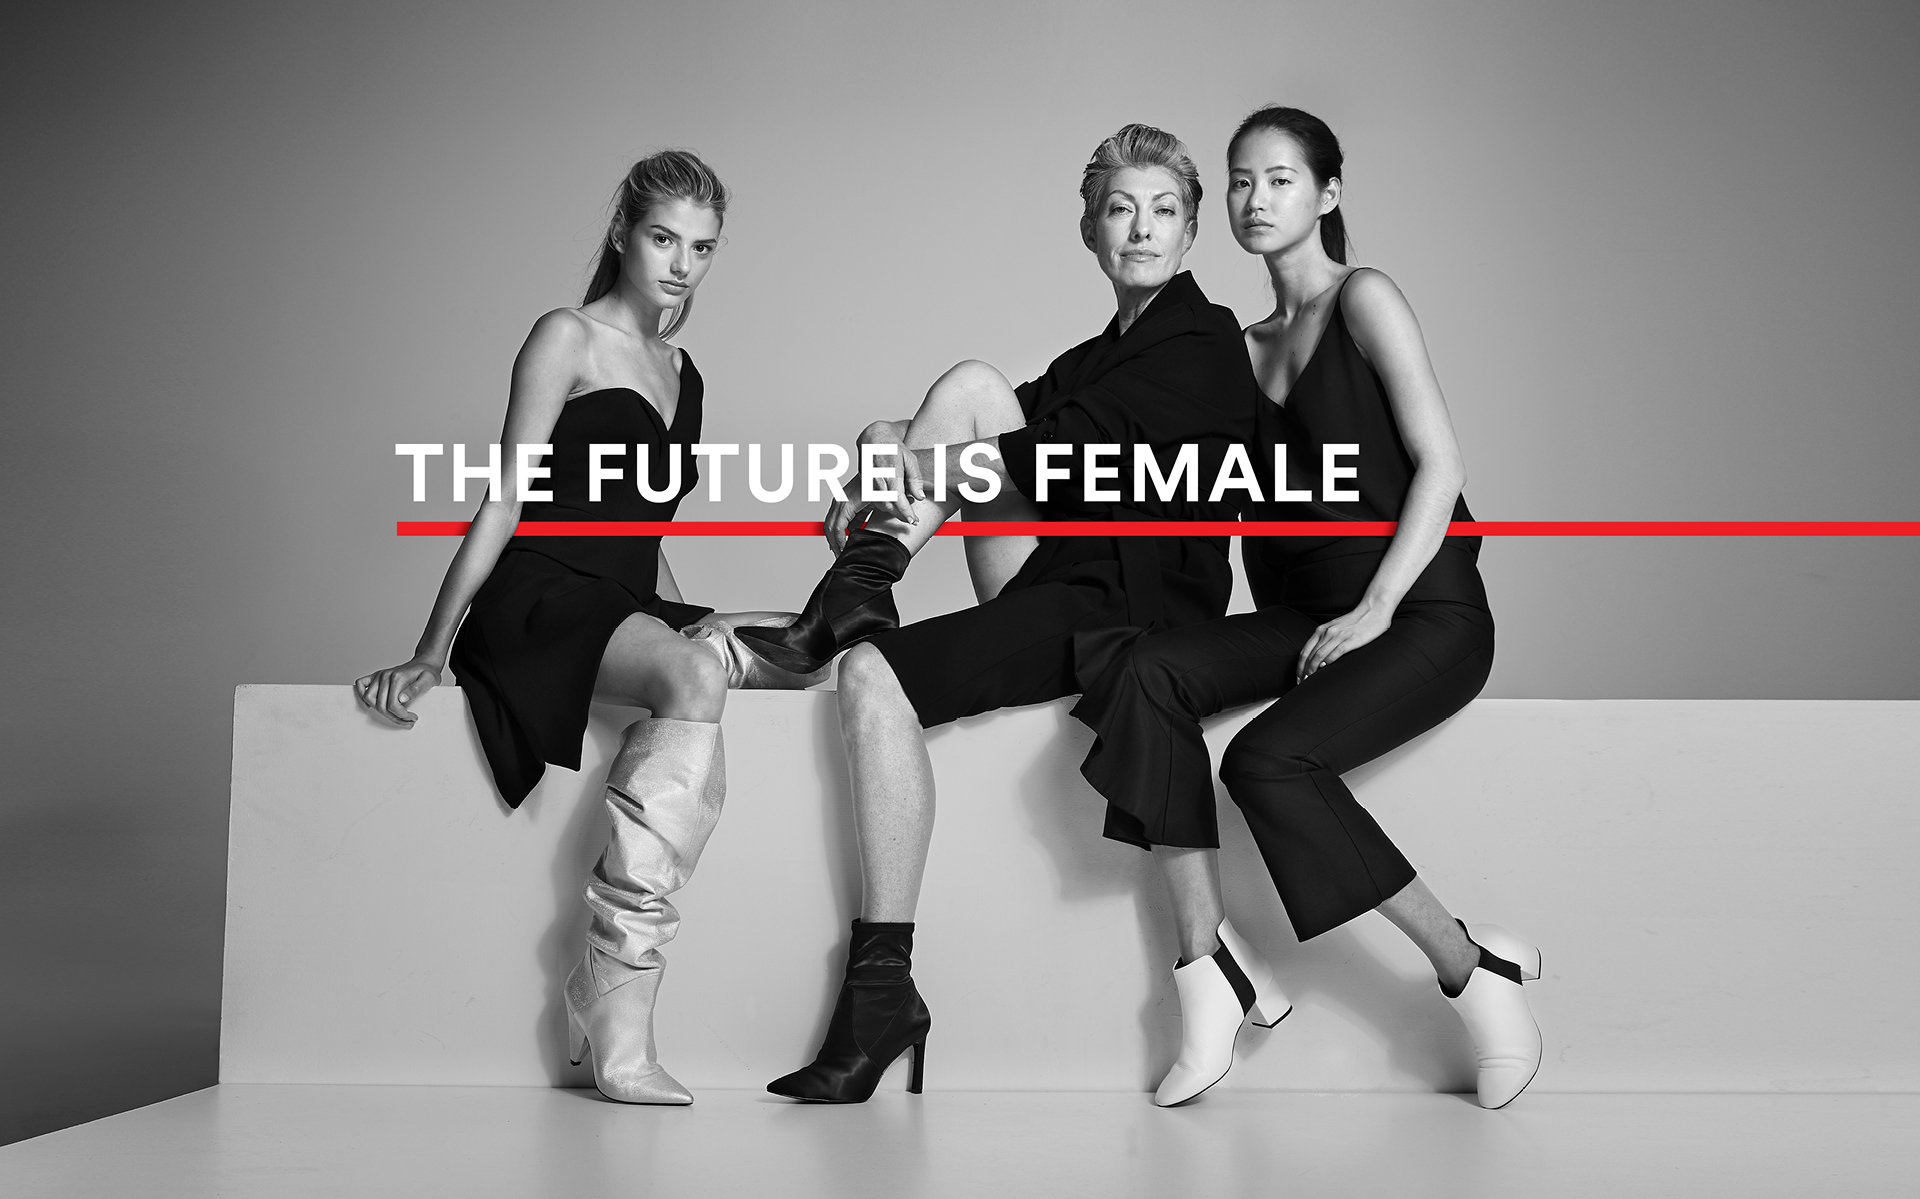 The future is female wittner key brand image 3 women